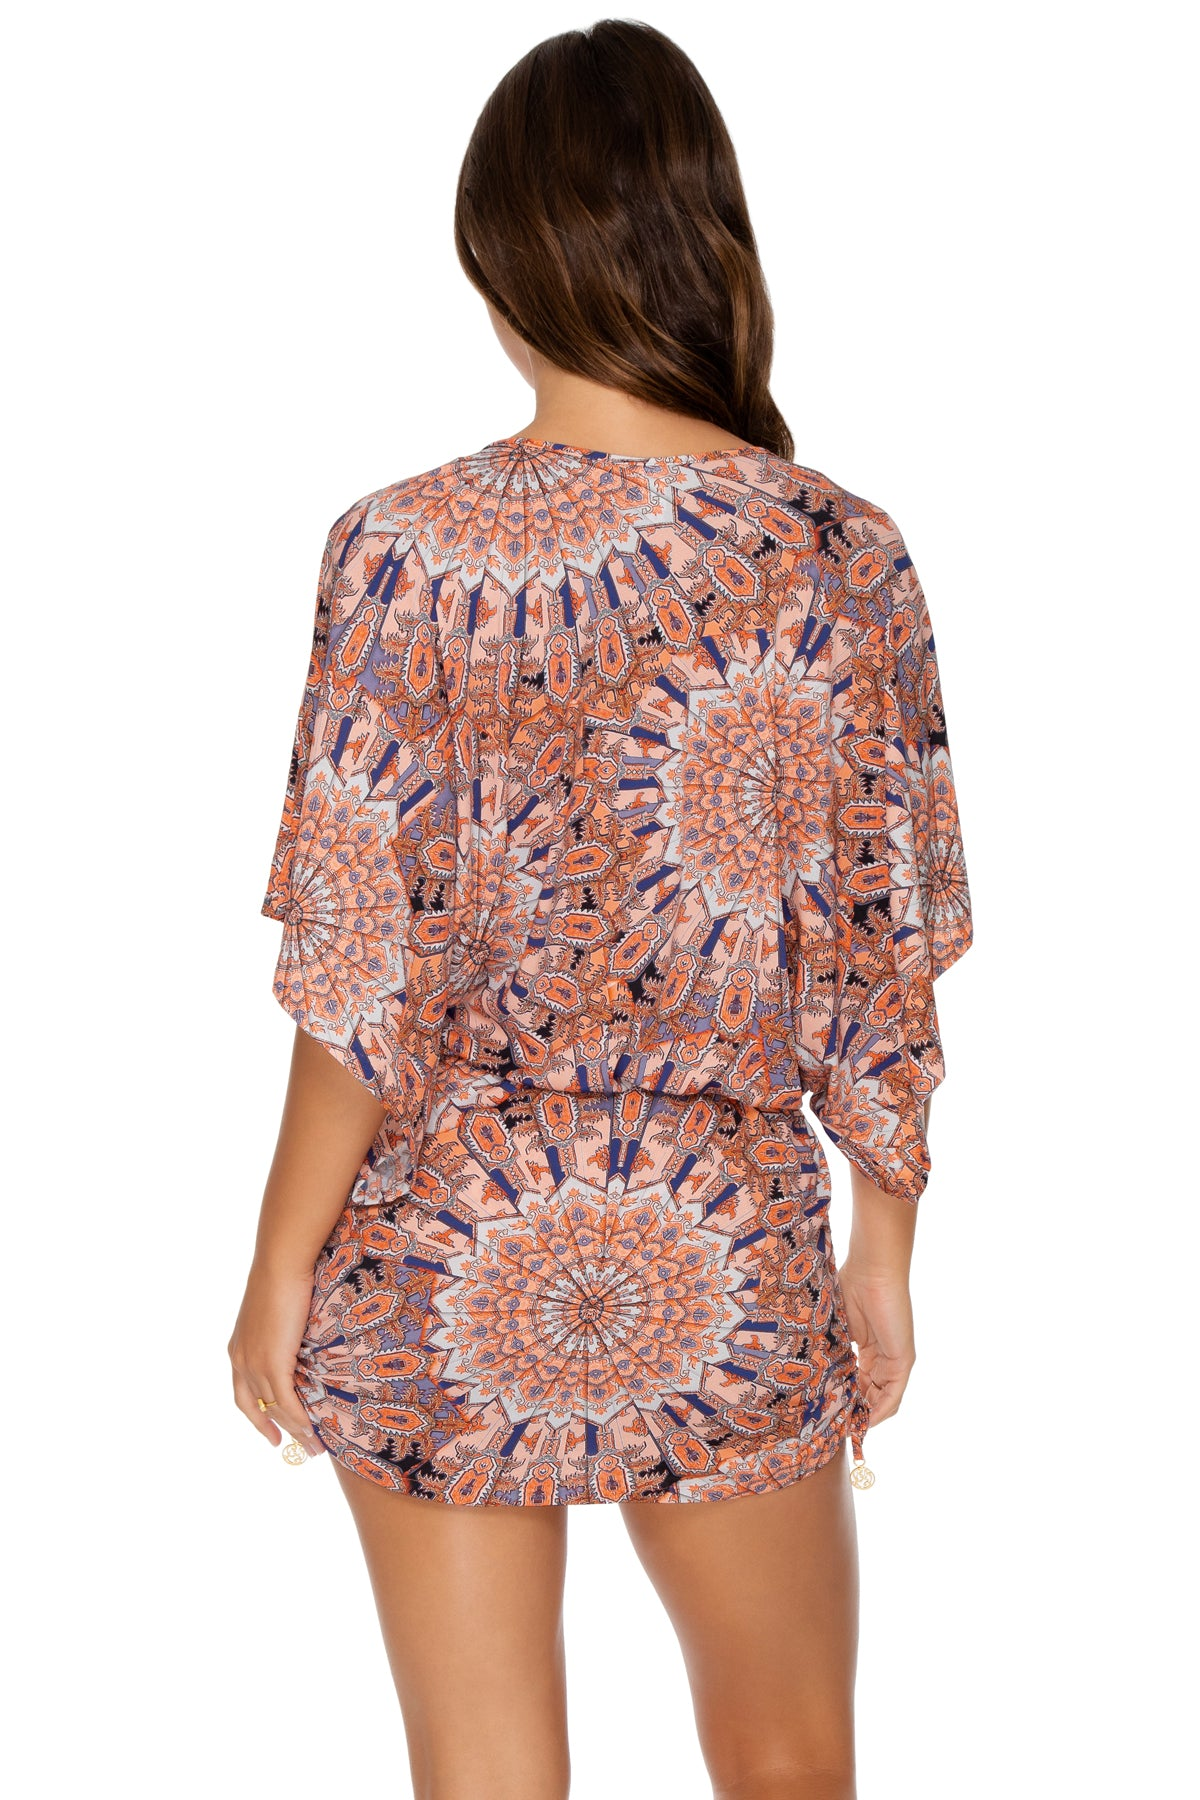 LA REINA DEL SUR - Cabana V Neck Dress • Multicolor